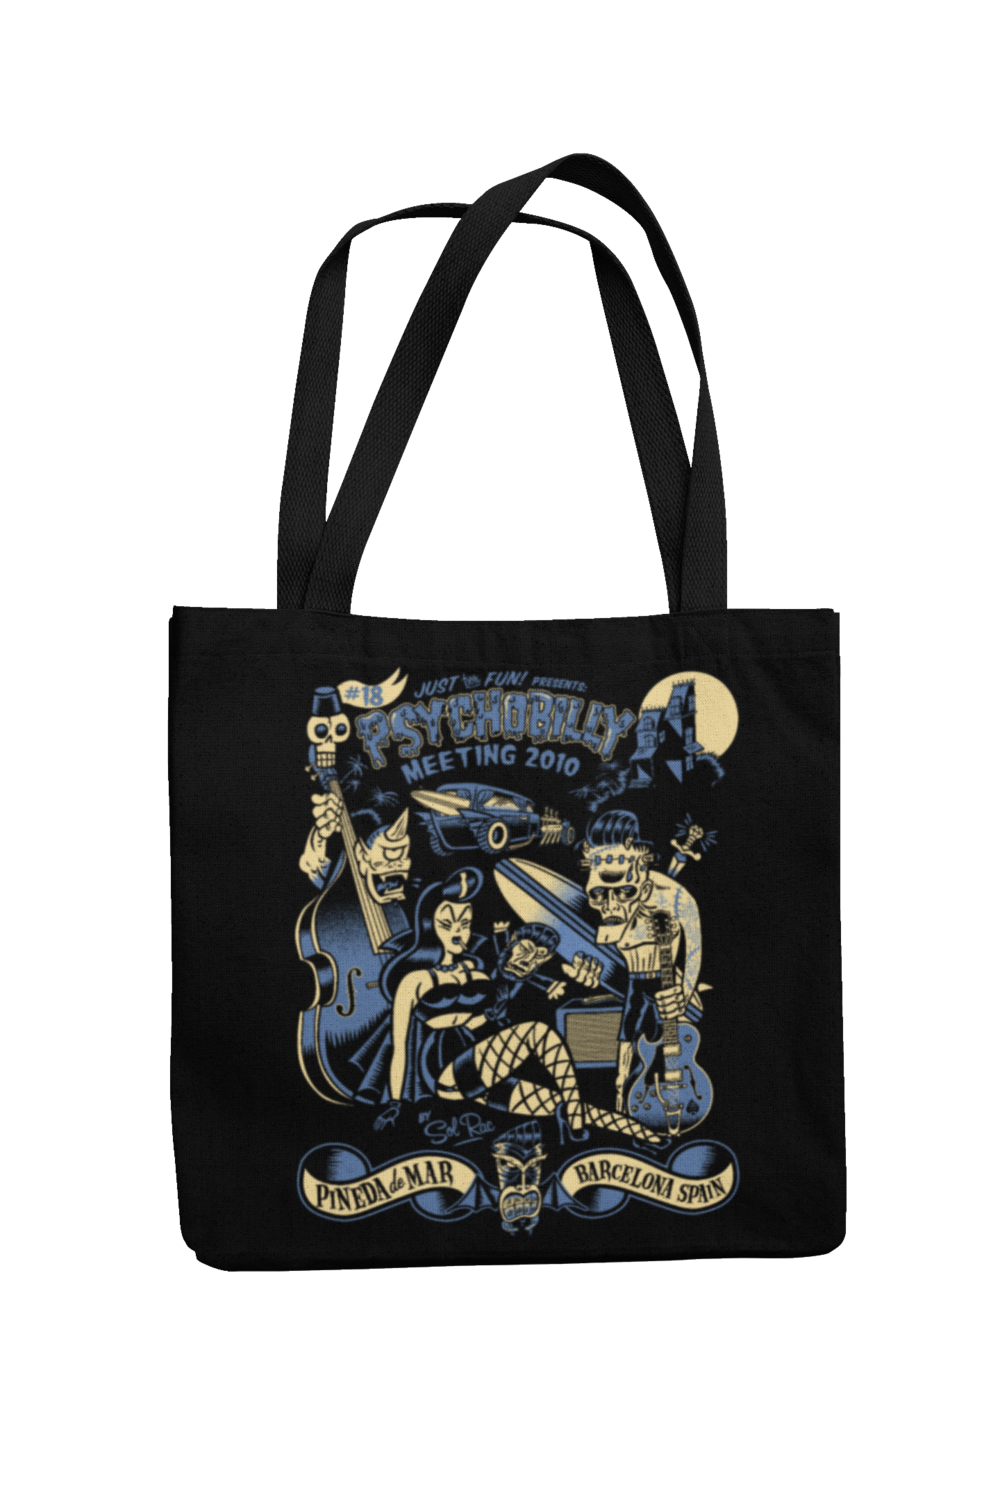 Cotton Bag Psychobilly meeting design by Solrac 2010